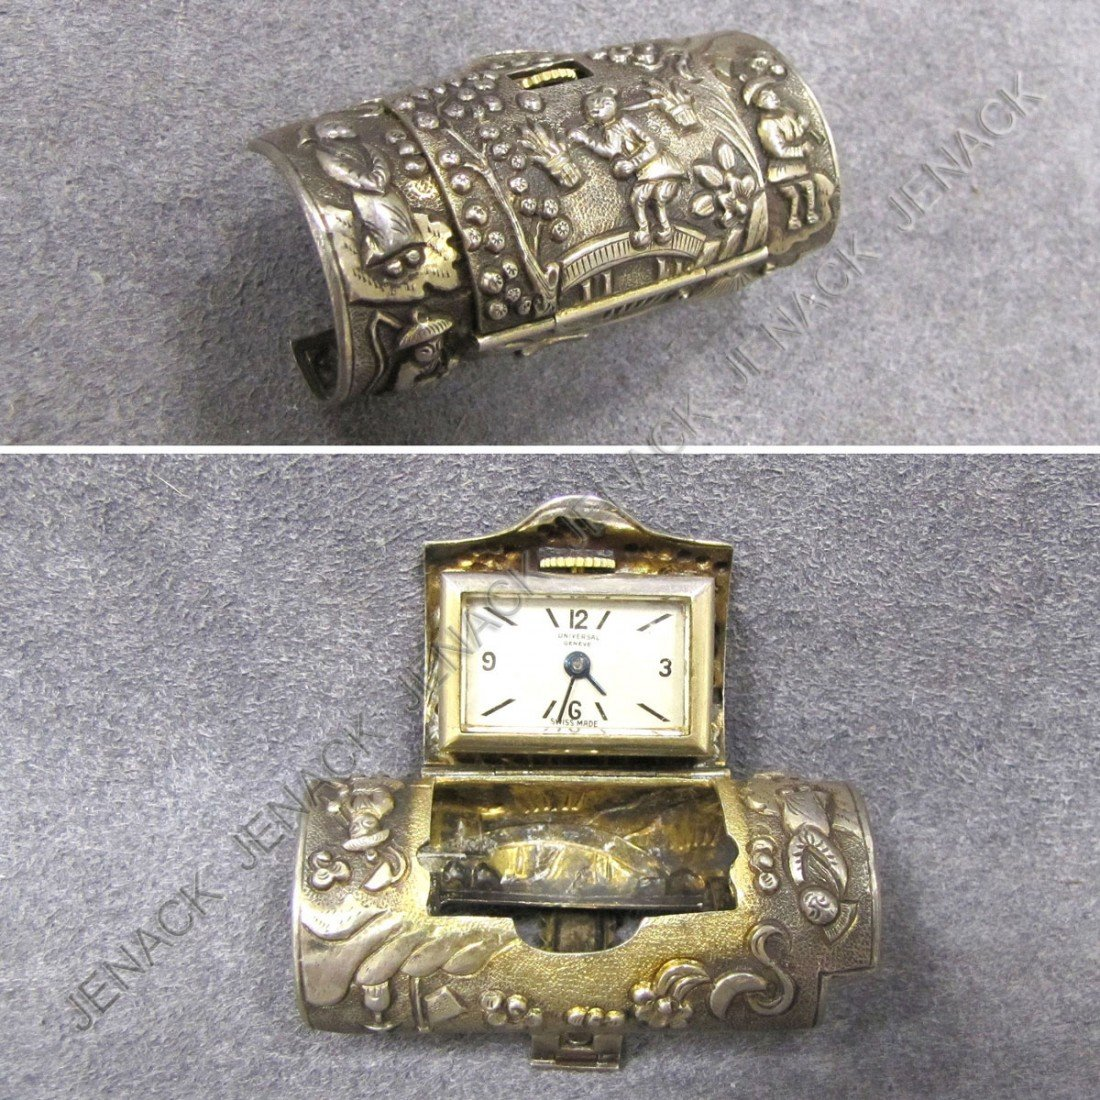 12: UNIVERSAL GENEVE CHINESE SILVER CASED CLIP WATCH